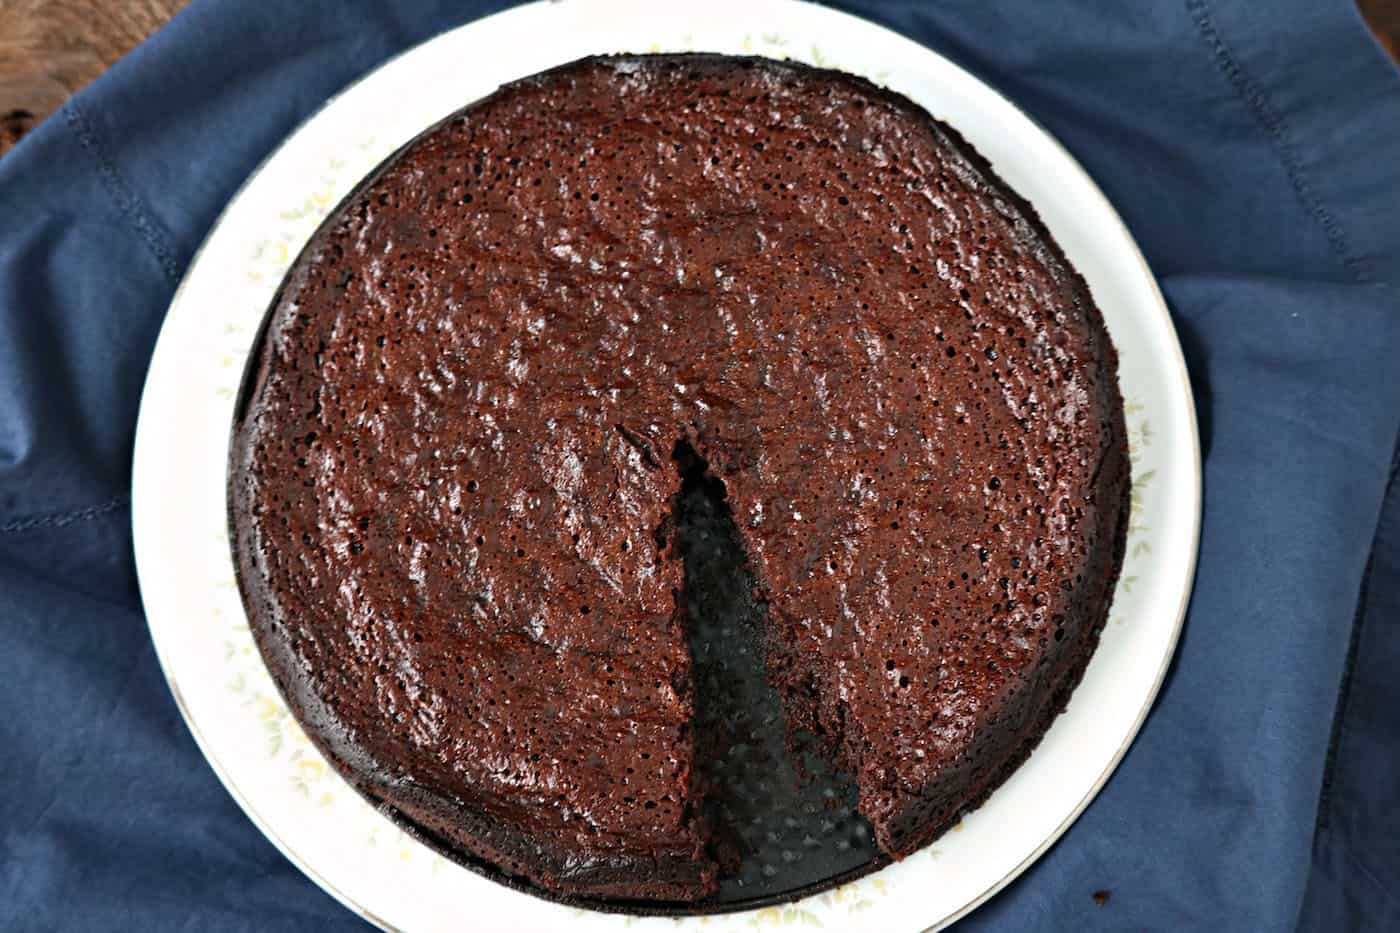 Paleo Flourless Chocolate Torte with Five Ingredients